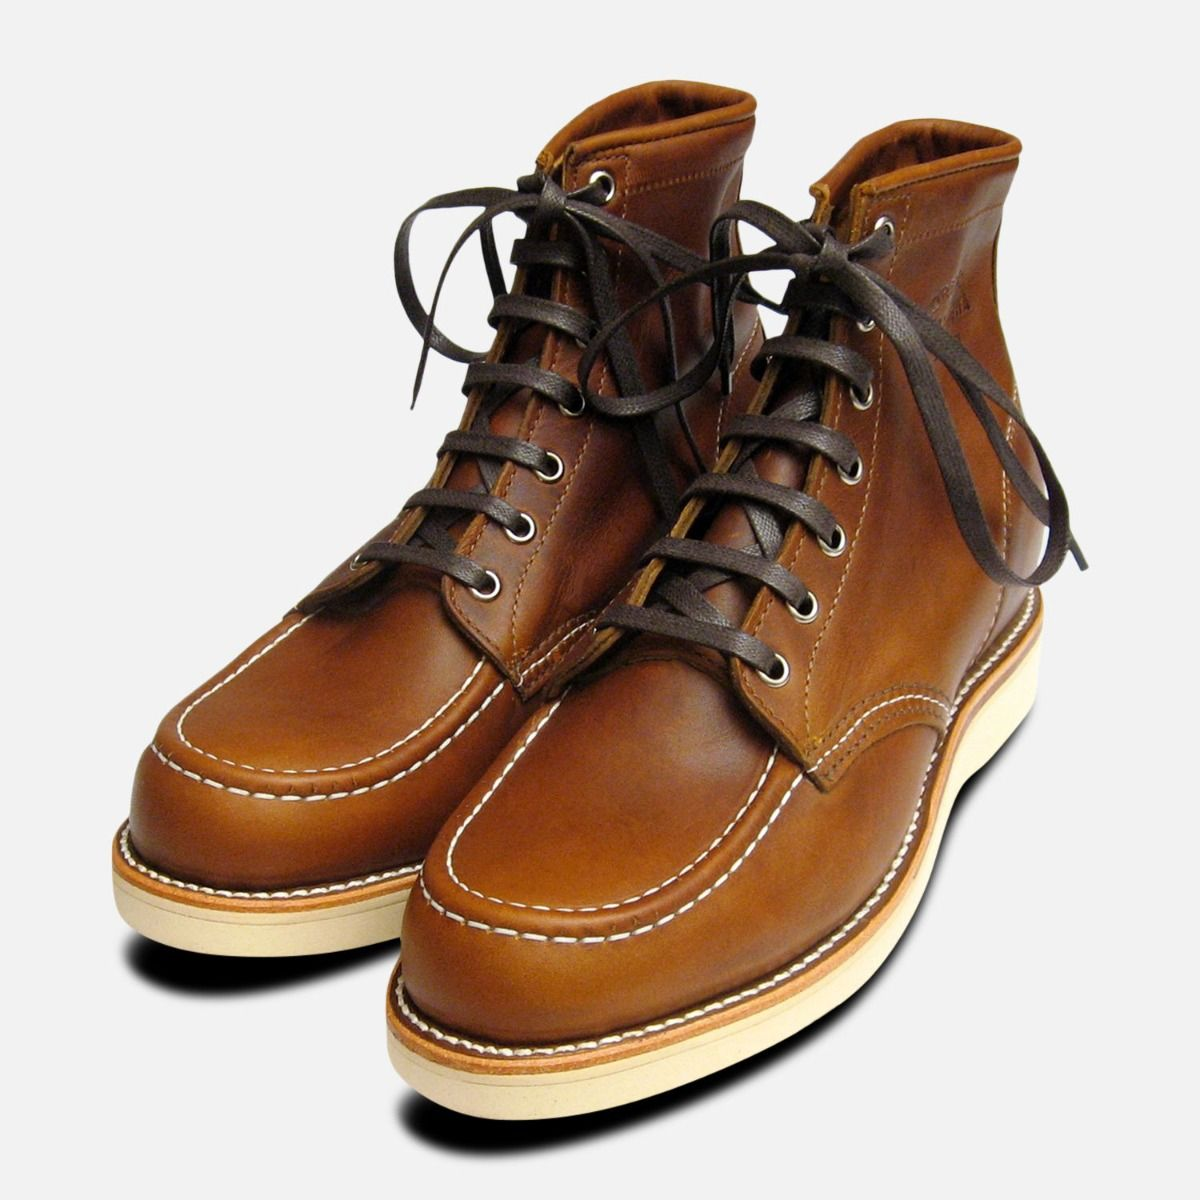 a8ac7f7977e Chippewa Shoes Tan Renegade Leather 1901M22 Vibram Sole Moc Toe Boots